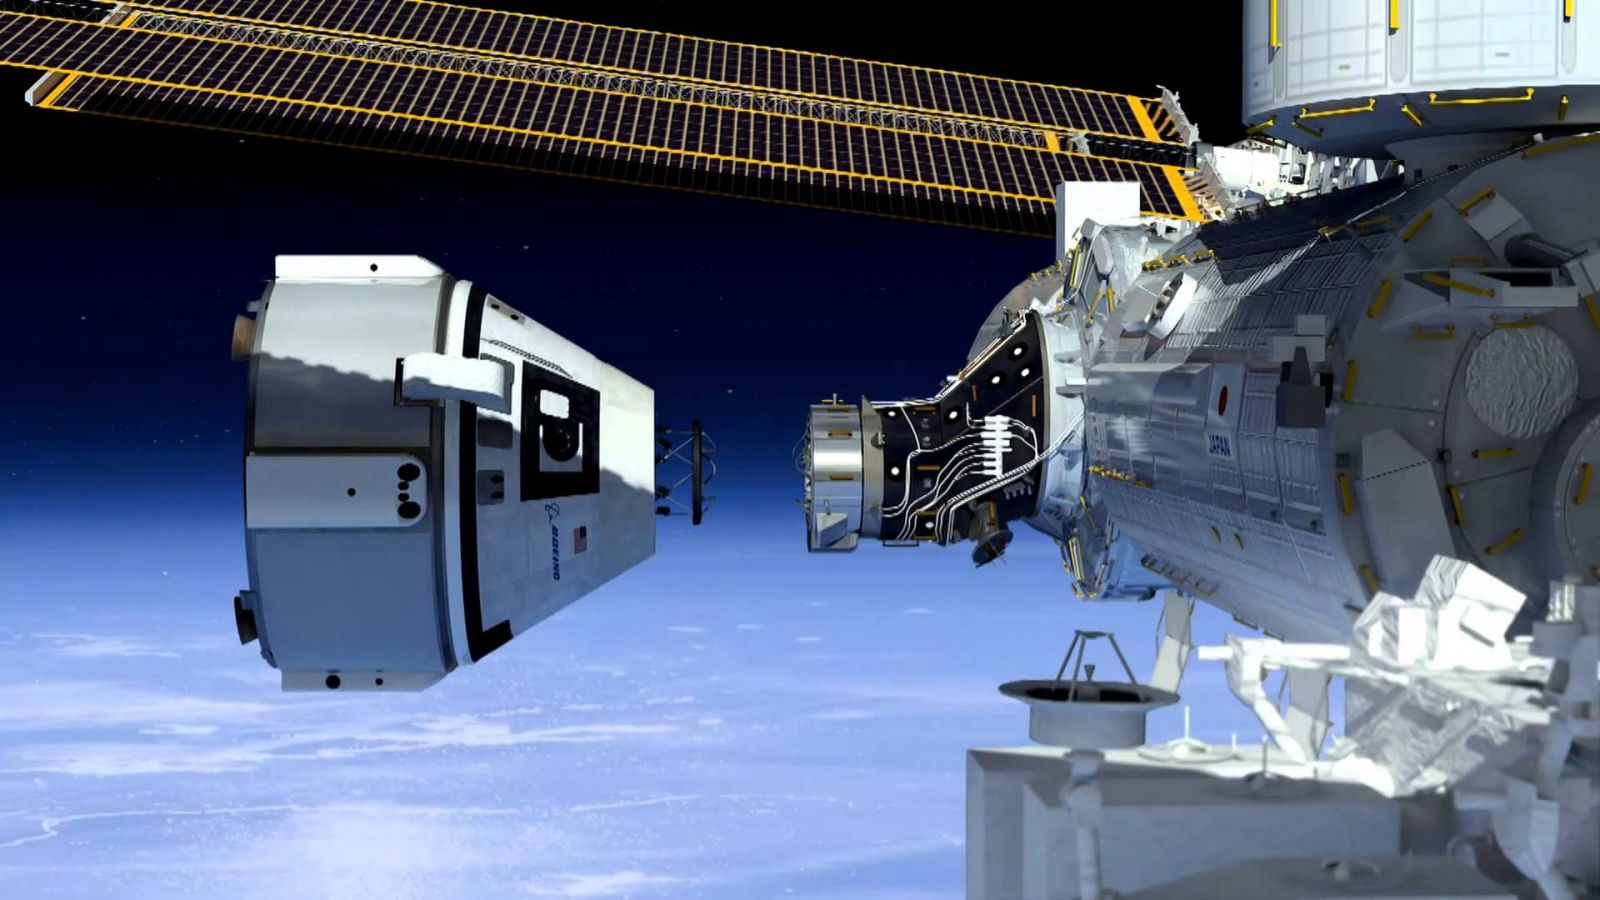 A rendering of the Starliner spacecraft approaching the International Space Station for docking. Credit: NASA